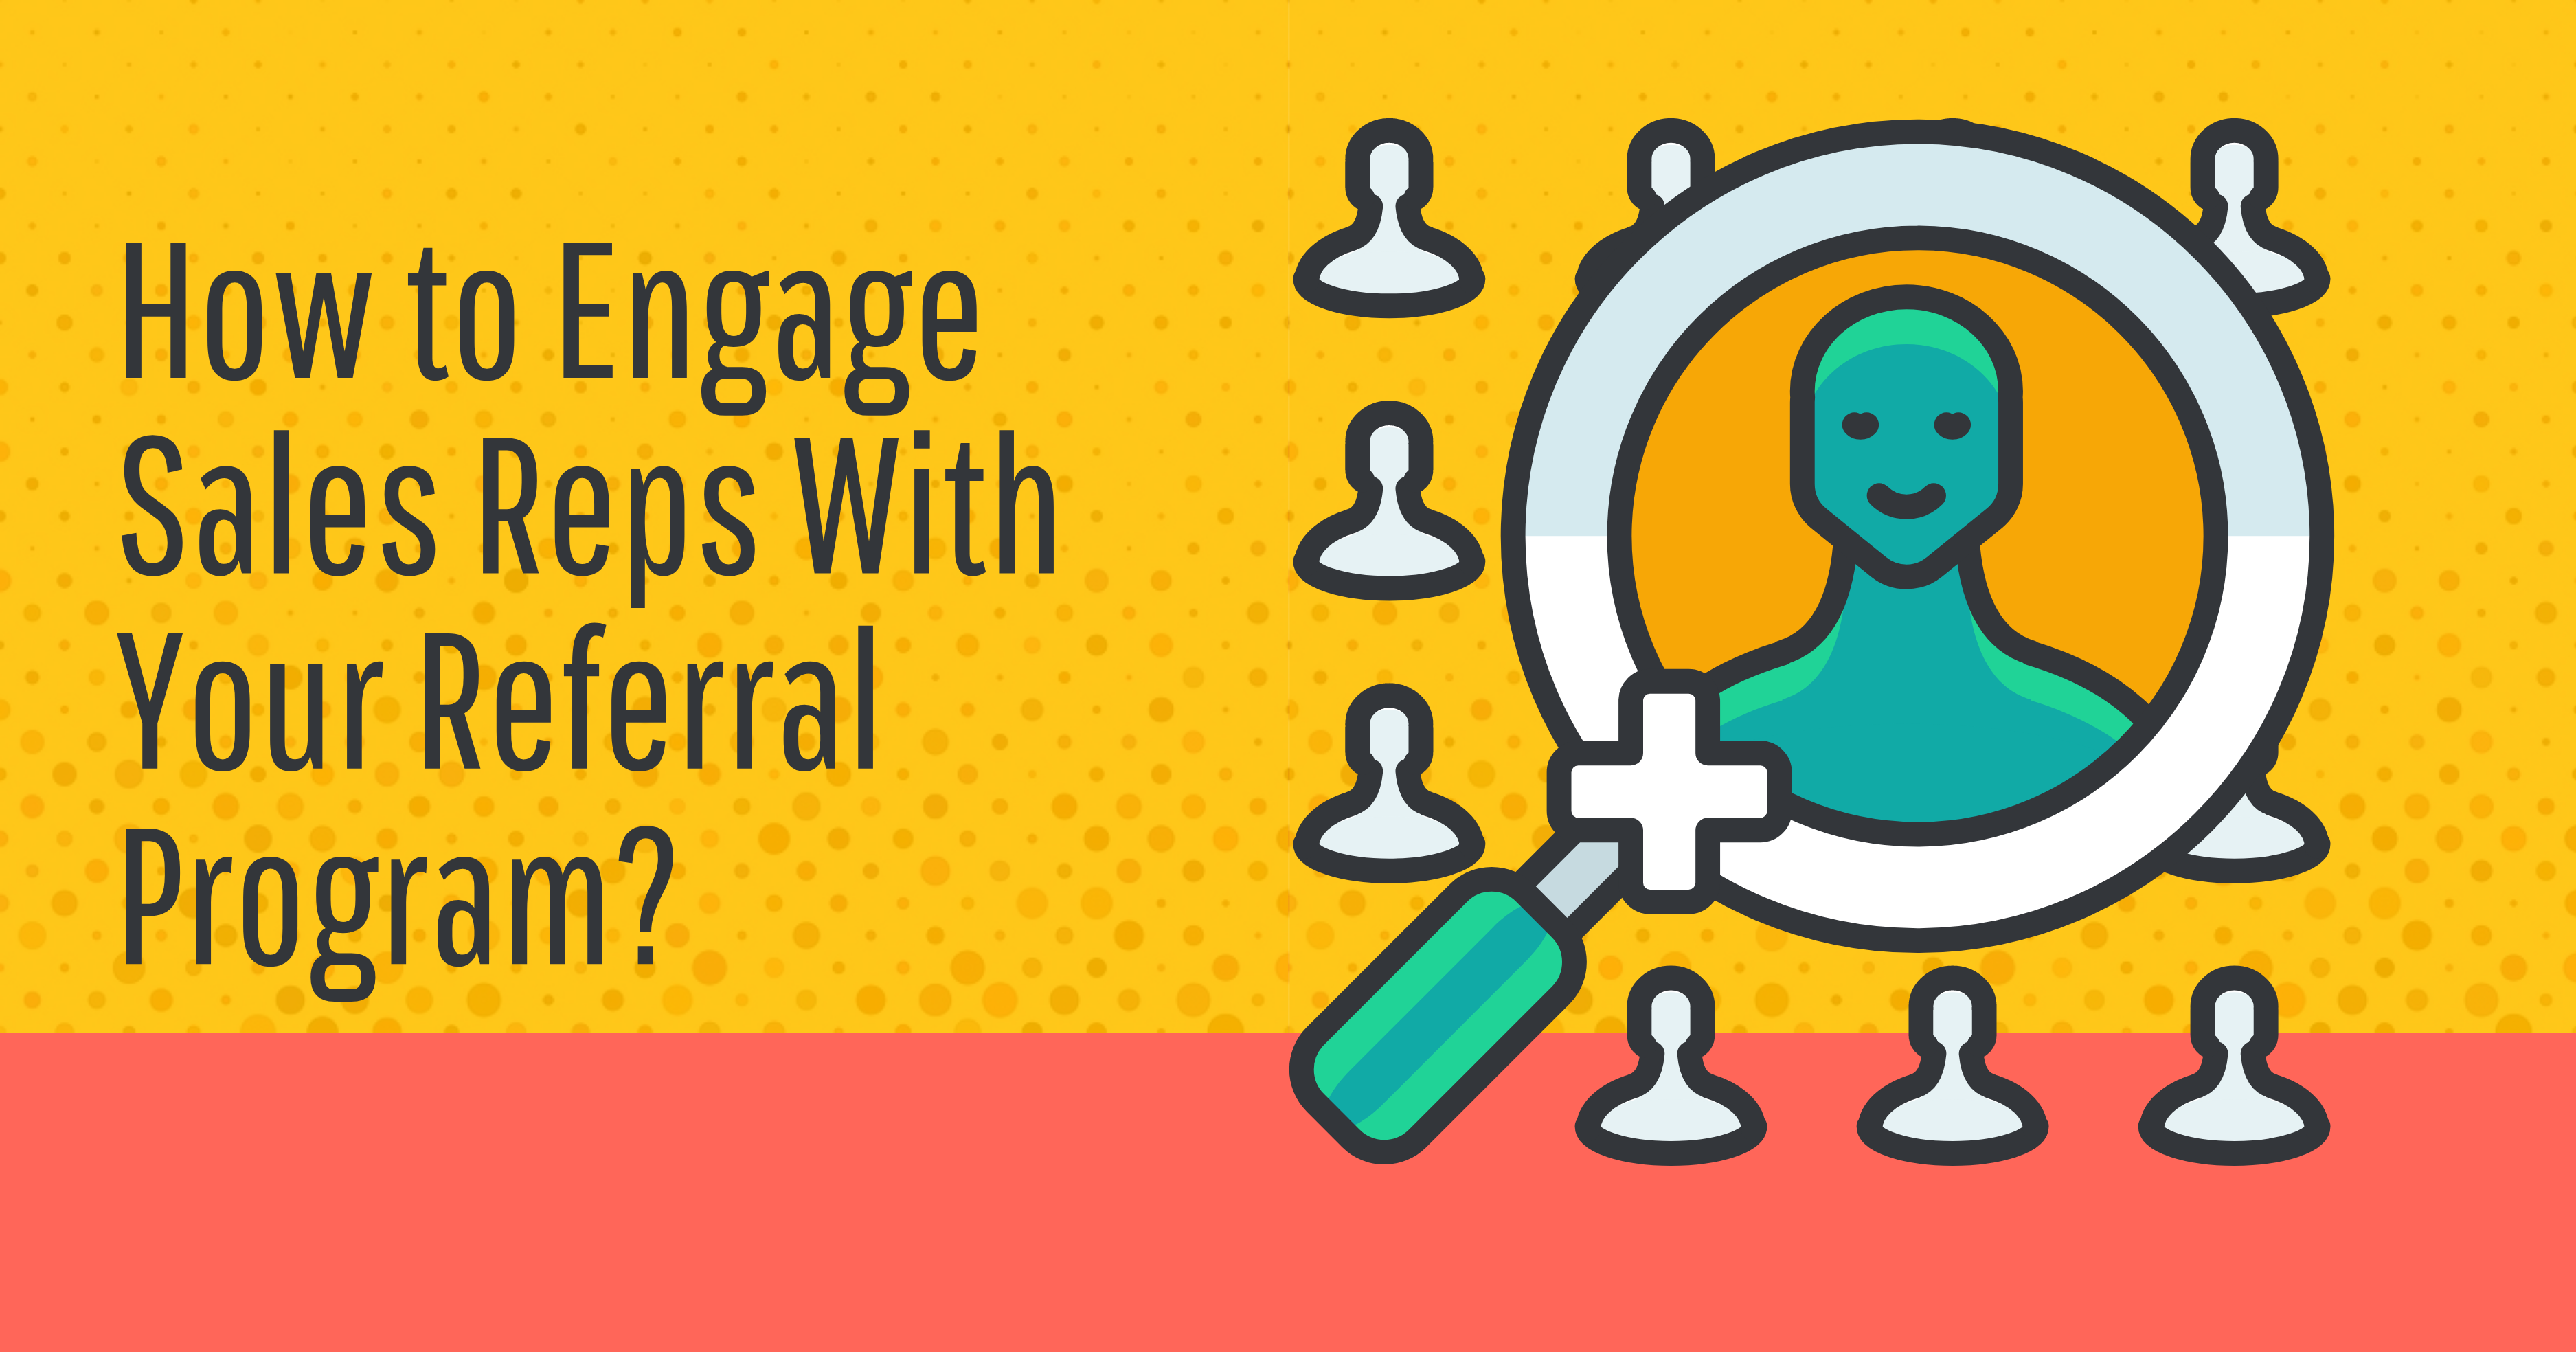 Long Pic_How to Engage Sales Reps With Your Referral Program